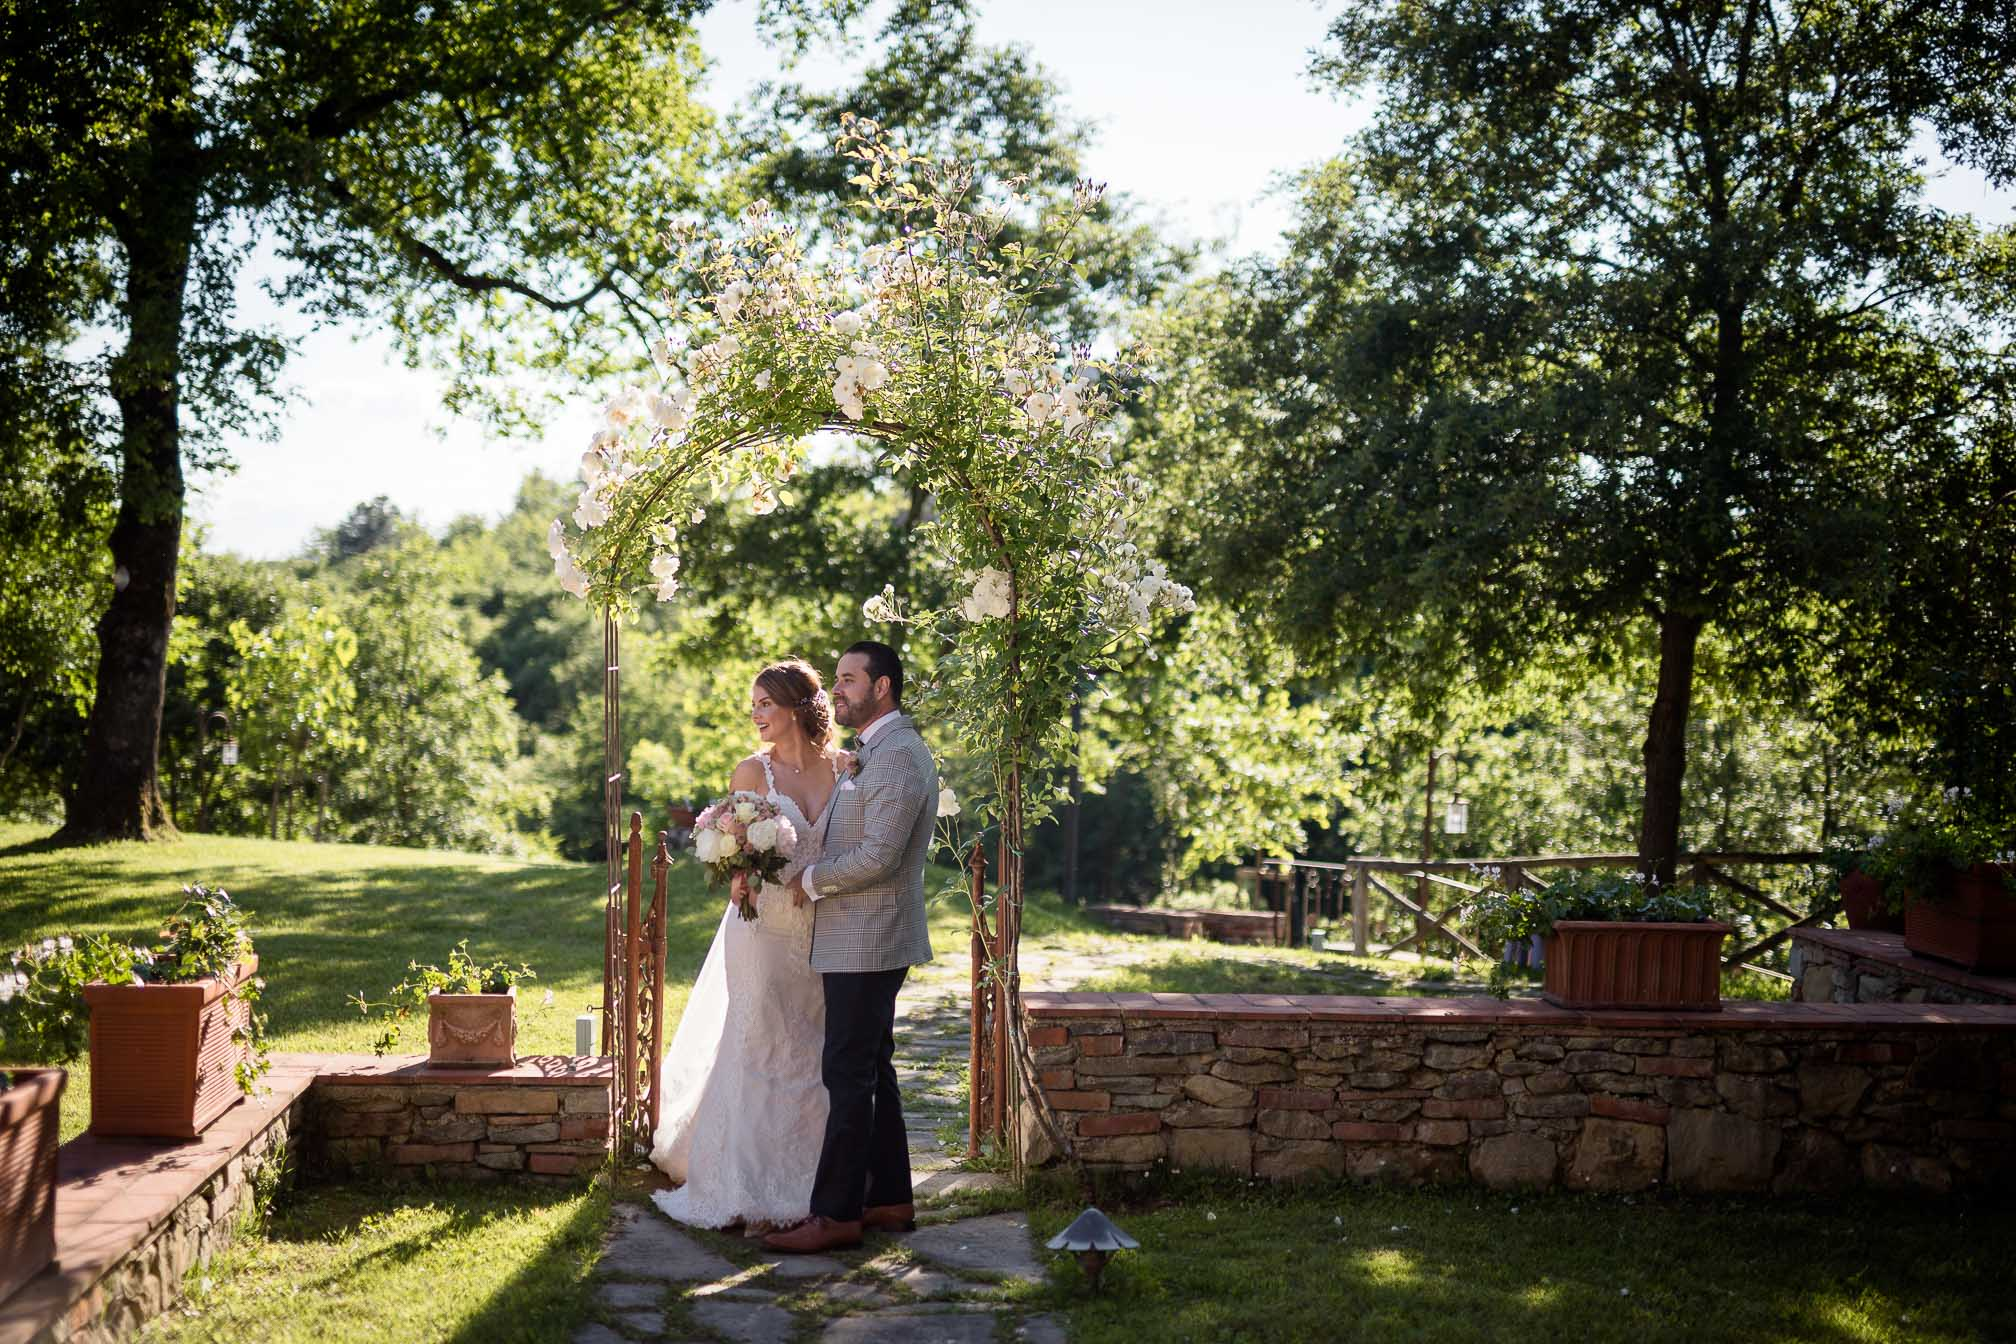 Laura & Gustavo – an intimate wedding in Chianti